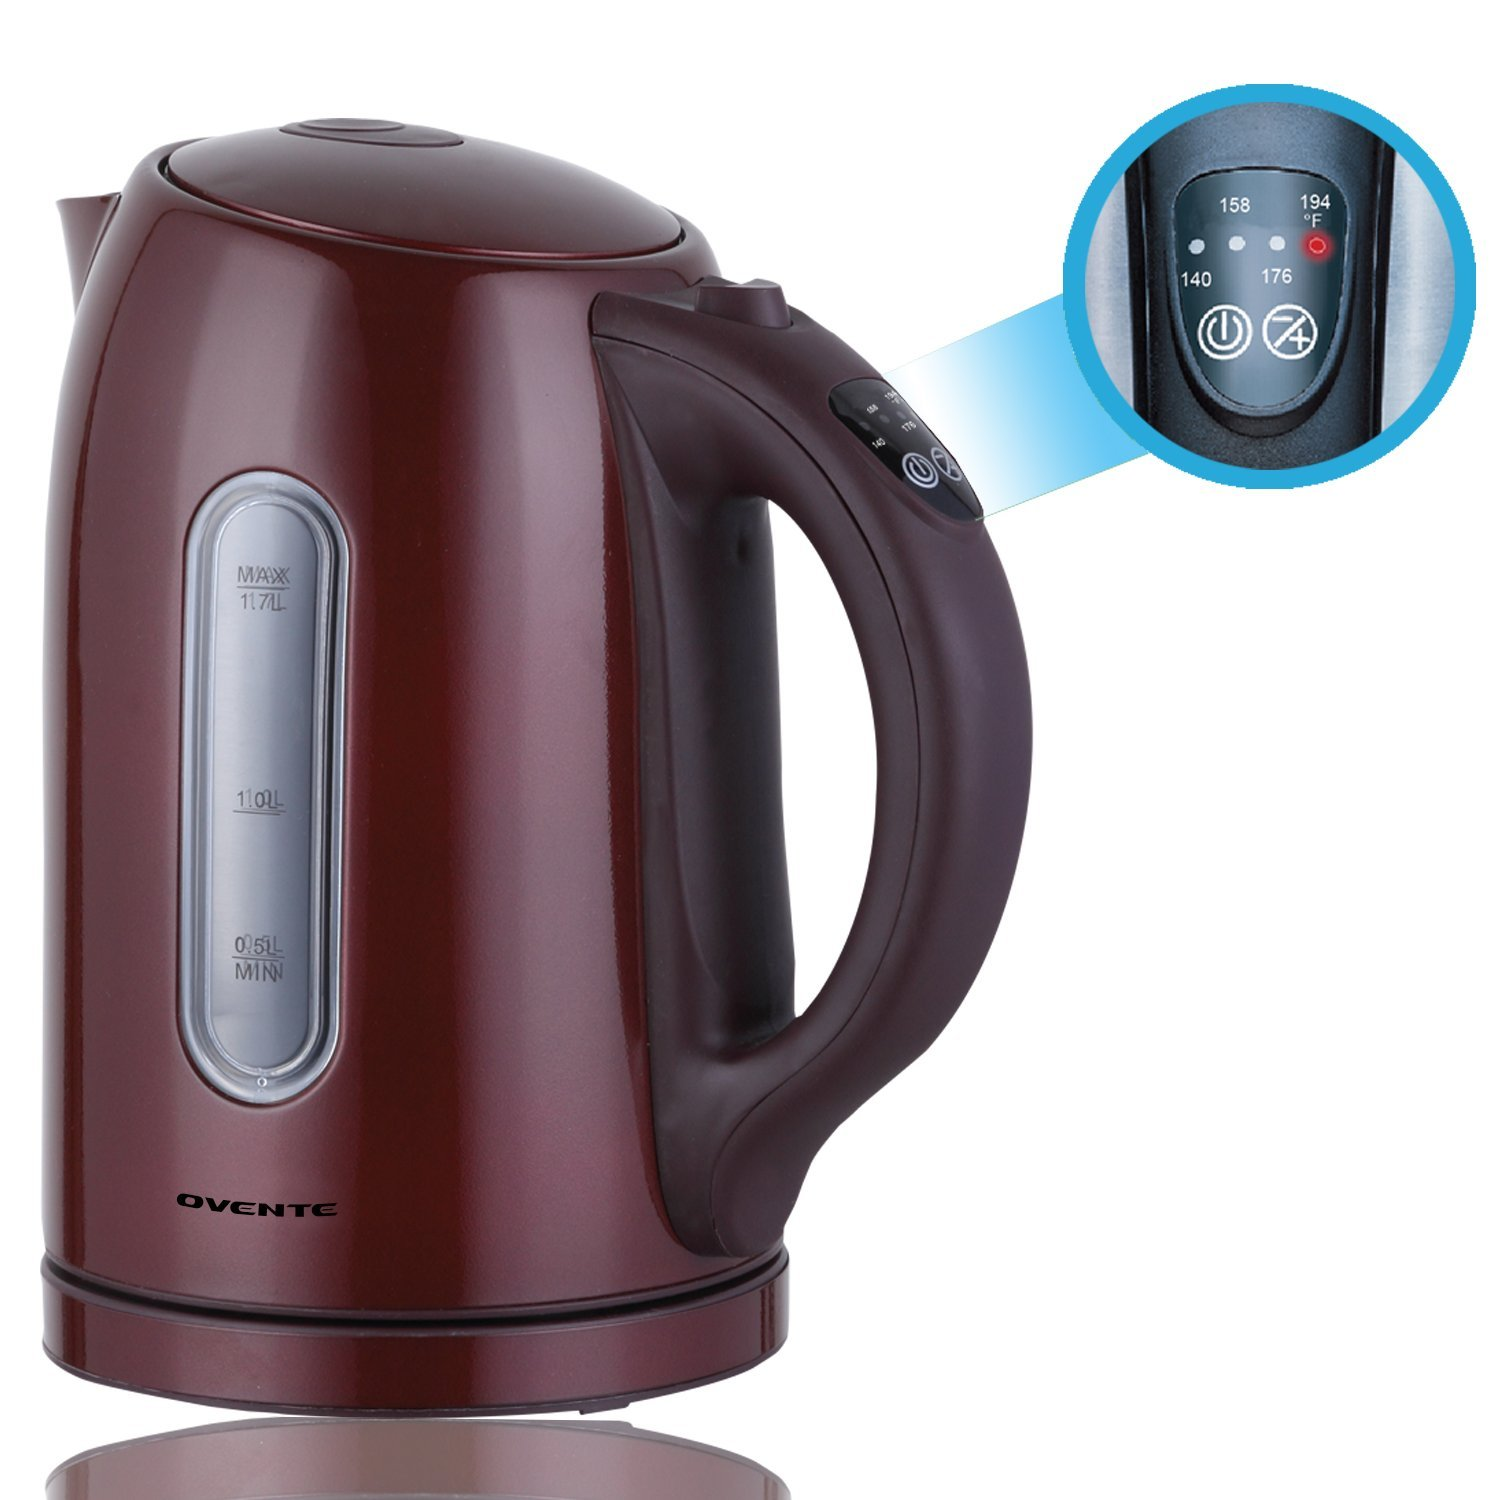 1.7 Liter Stainless Steel Electric Kettle with Temperature Control and Keep Warm, BPA Free (No Beep) By Ovente Ship from US